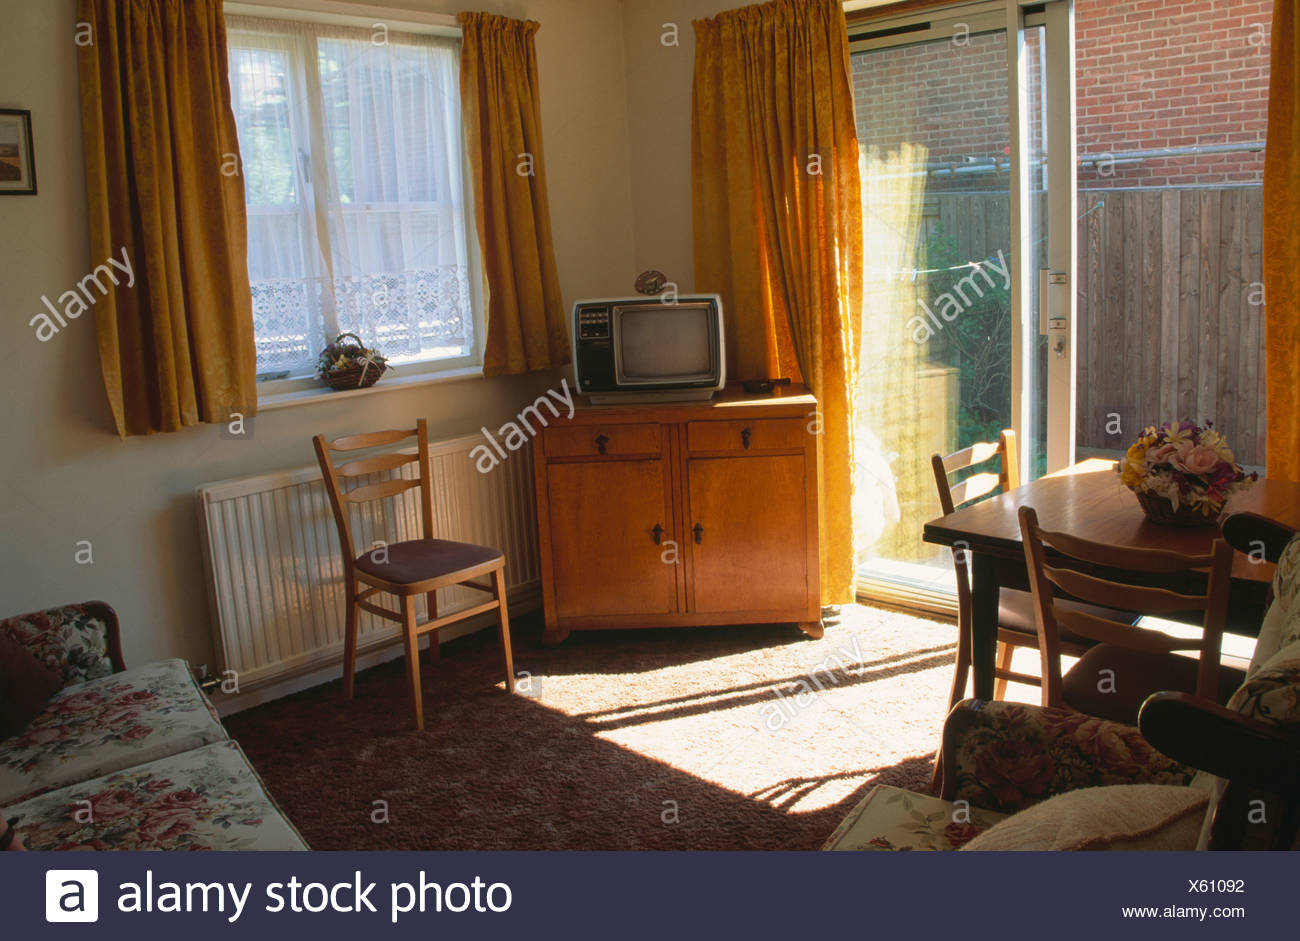 . Old fashioned living room before renovation Stock Photo  279076030